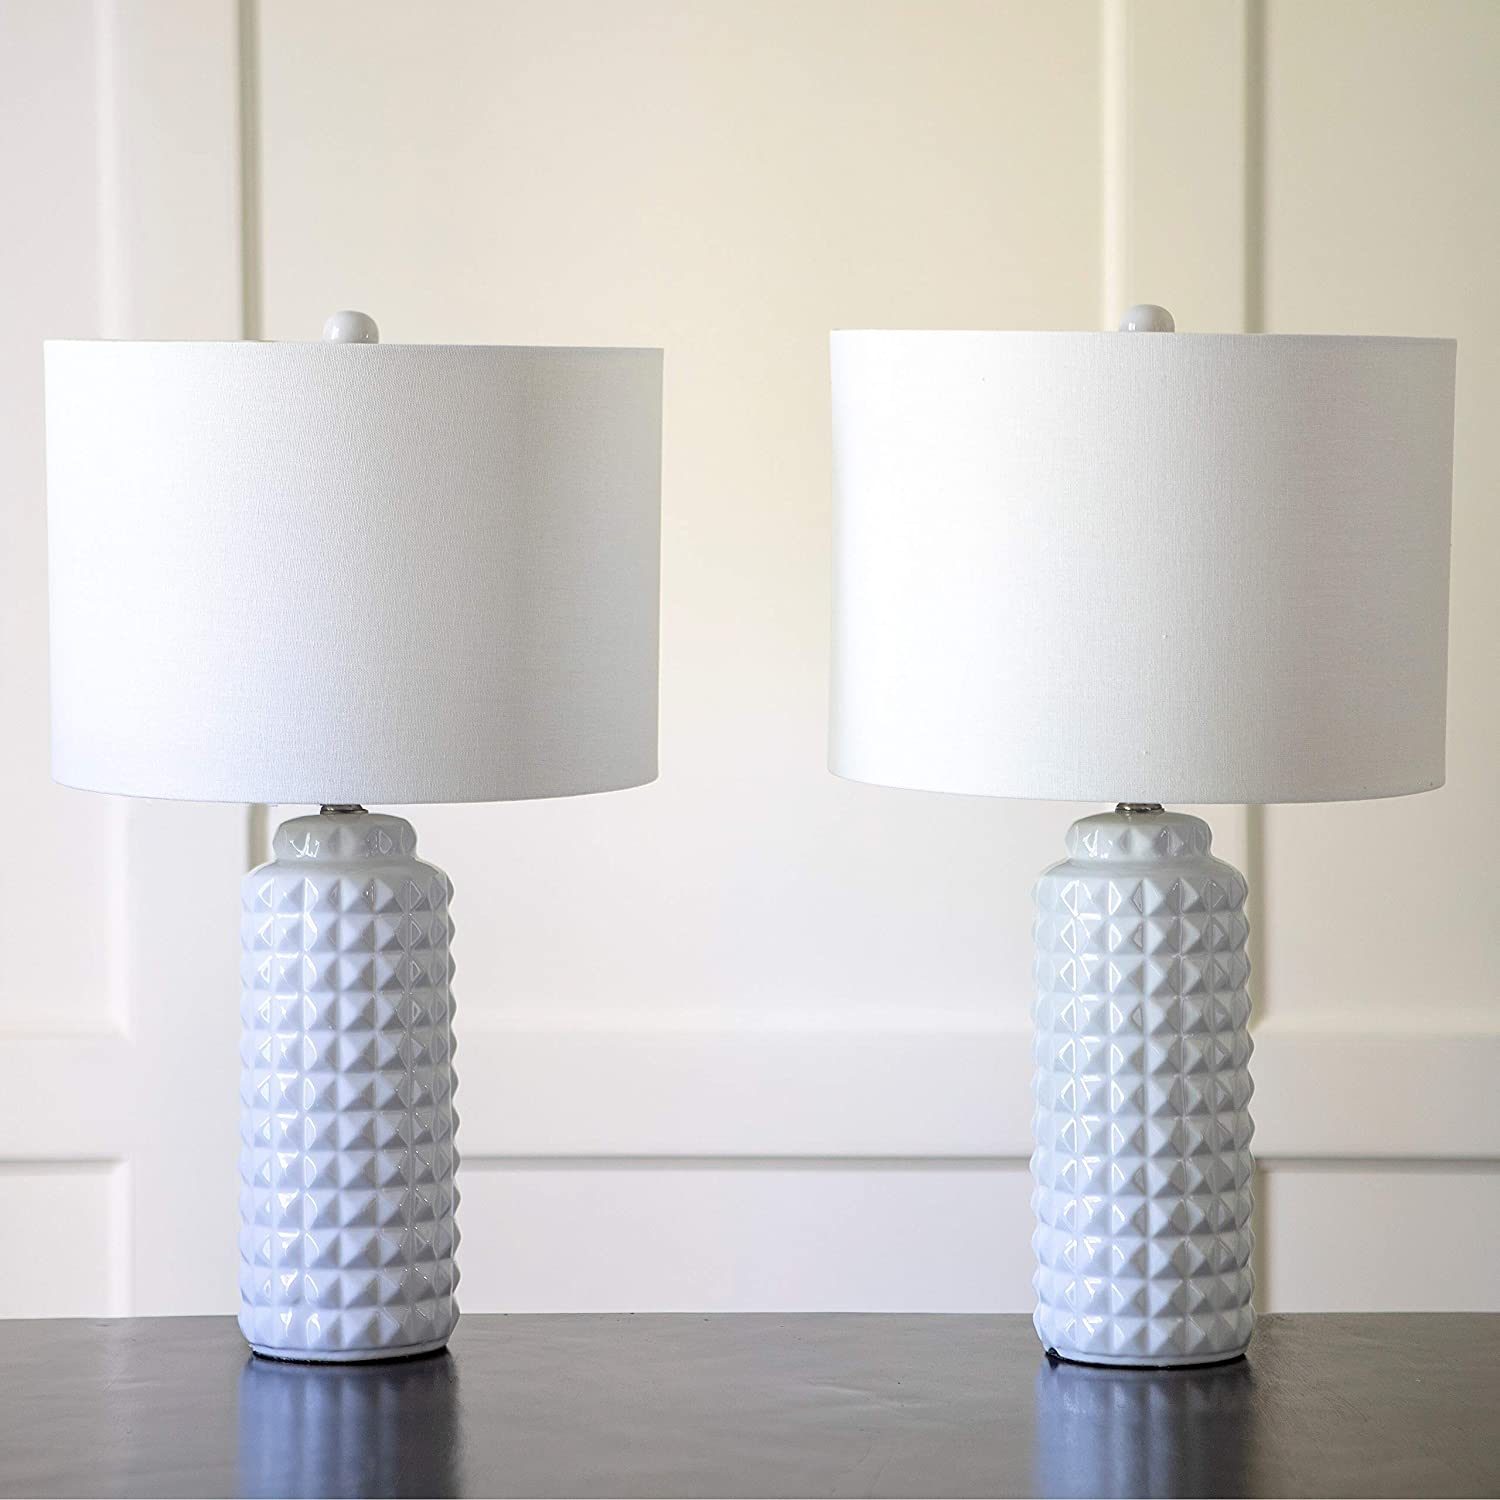 Decor Therapy Mp1634 Pair Of 24 24 Inch Felix Led Table Lamps Set Of 2 White Home Improvement Amazon Com